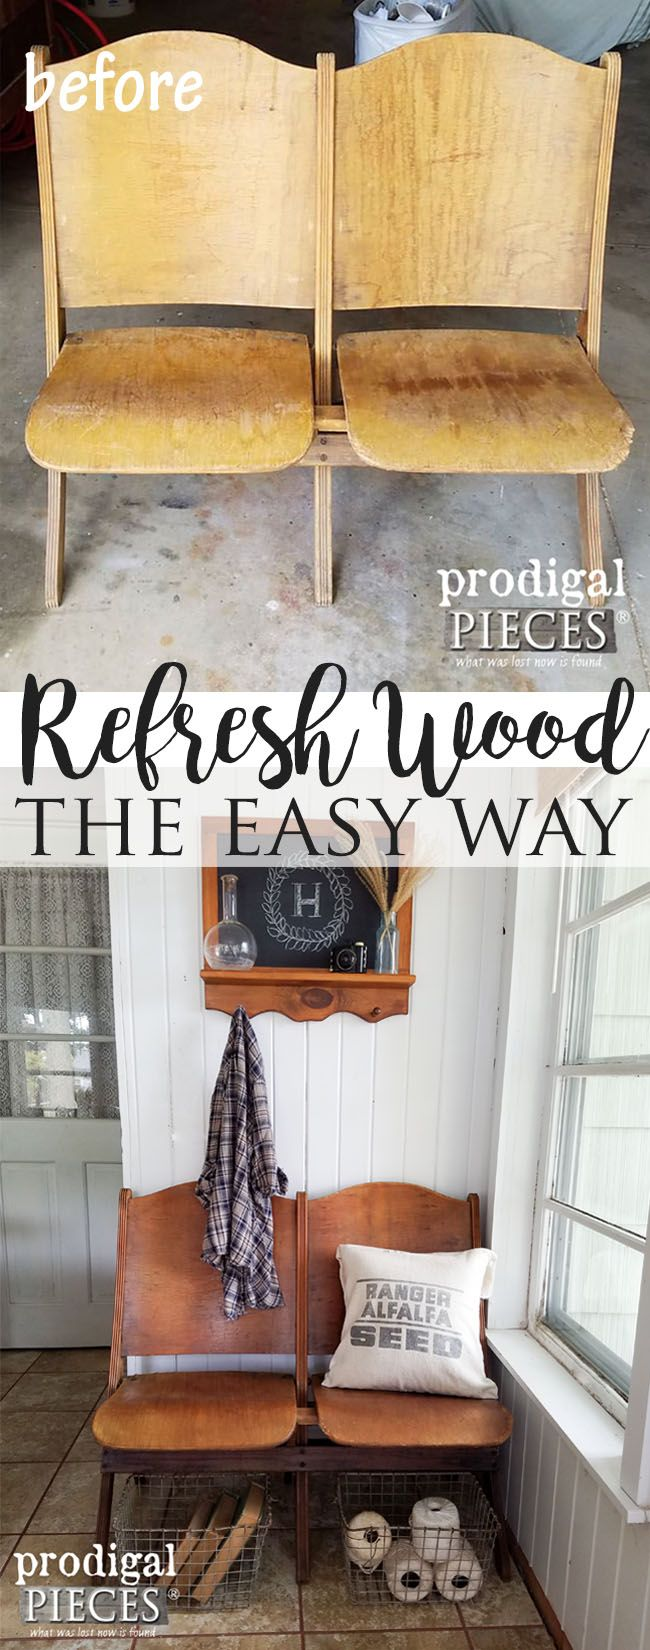 How to Refresh Old Wood with One Ingredient by Prodigal Pieces   www.prodigalpie...